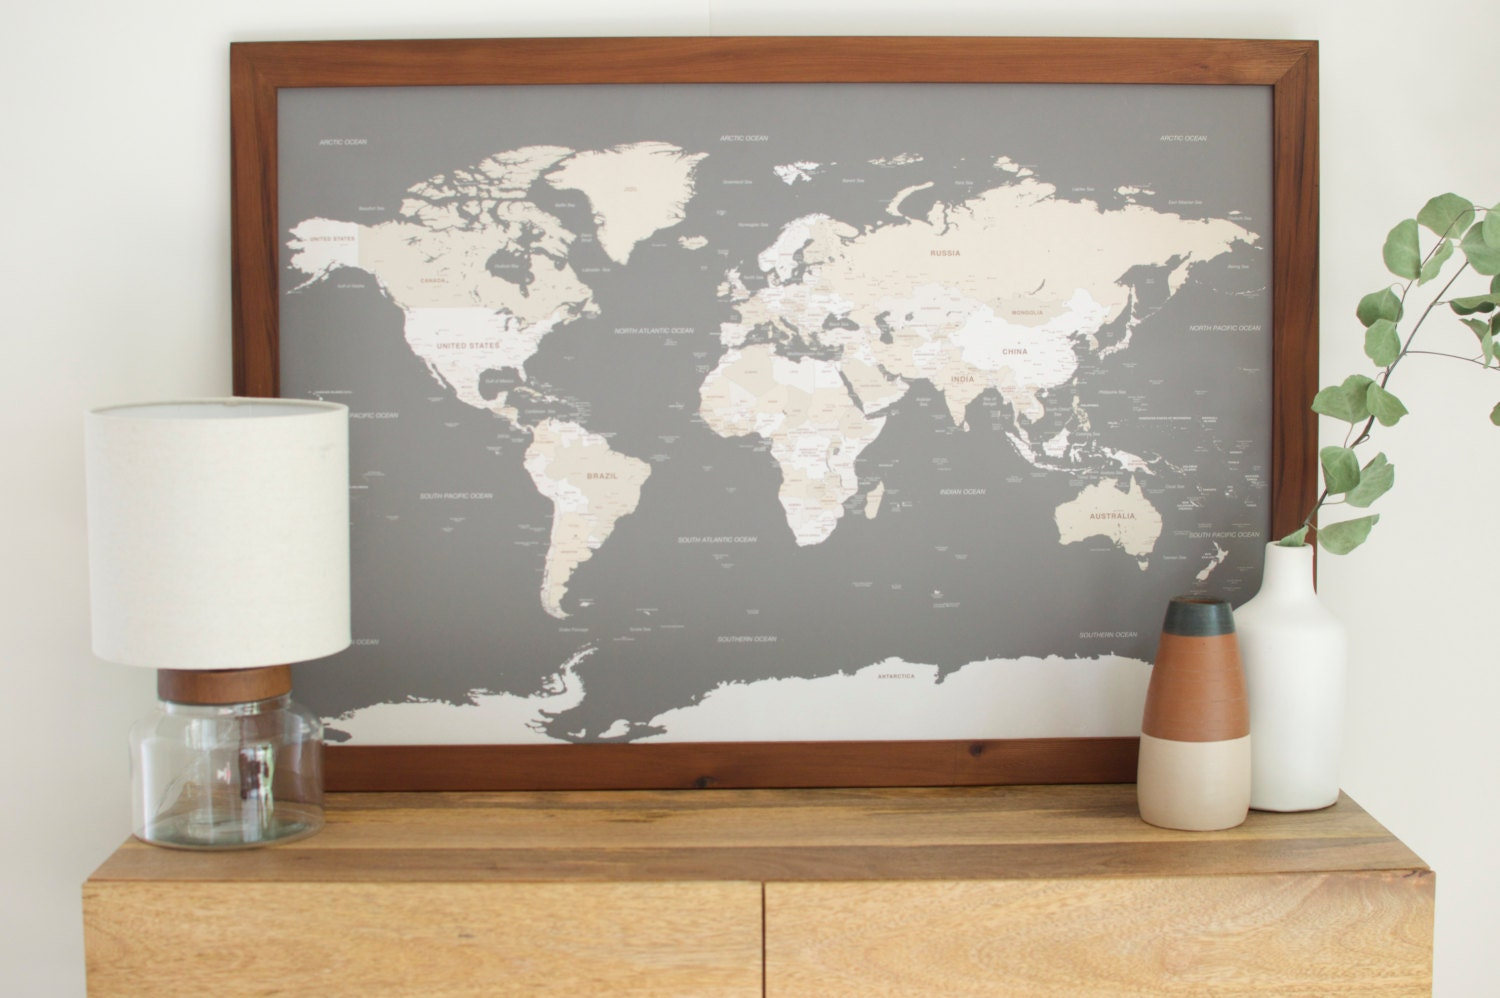 World political map earthtoned poster size and framed amazoncom push pin travel map world map world map wall art world map framed world map gumiabroncs Gallery